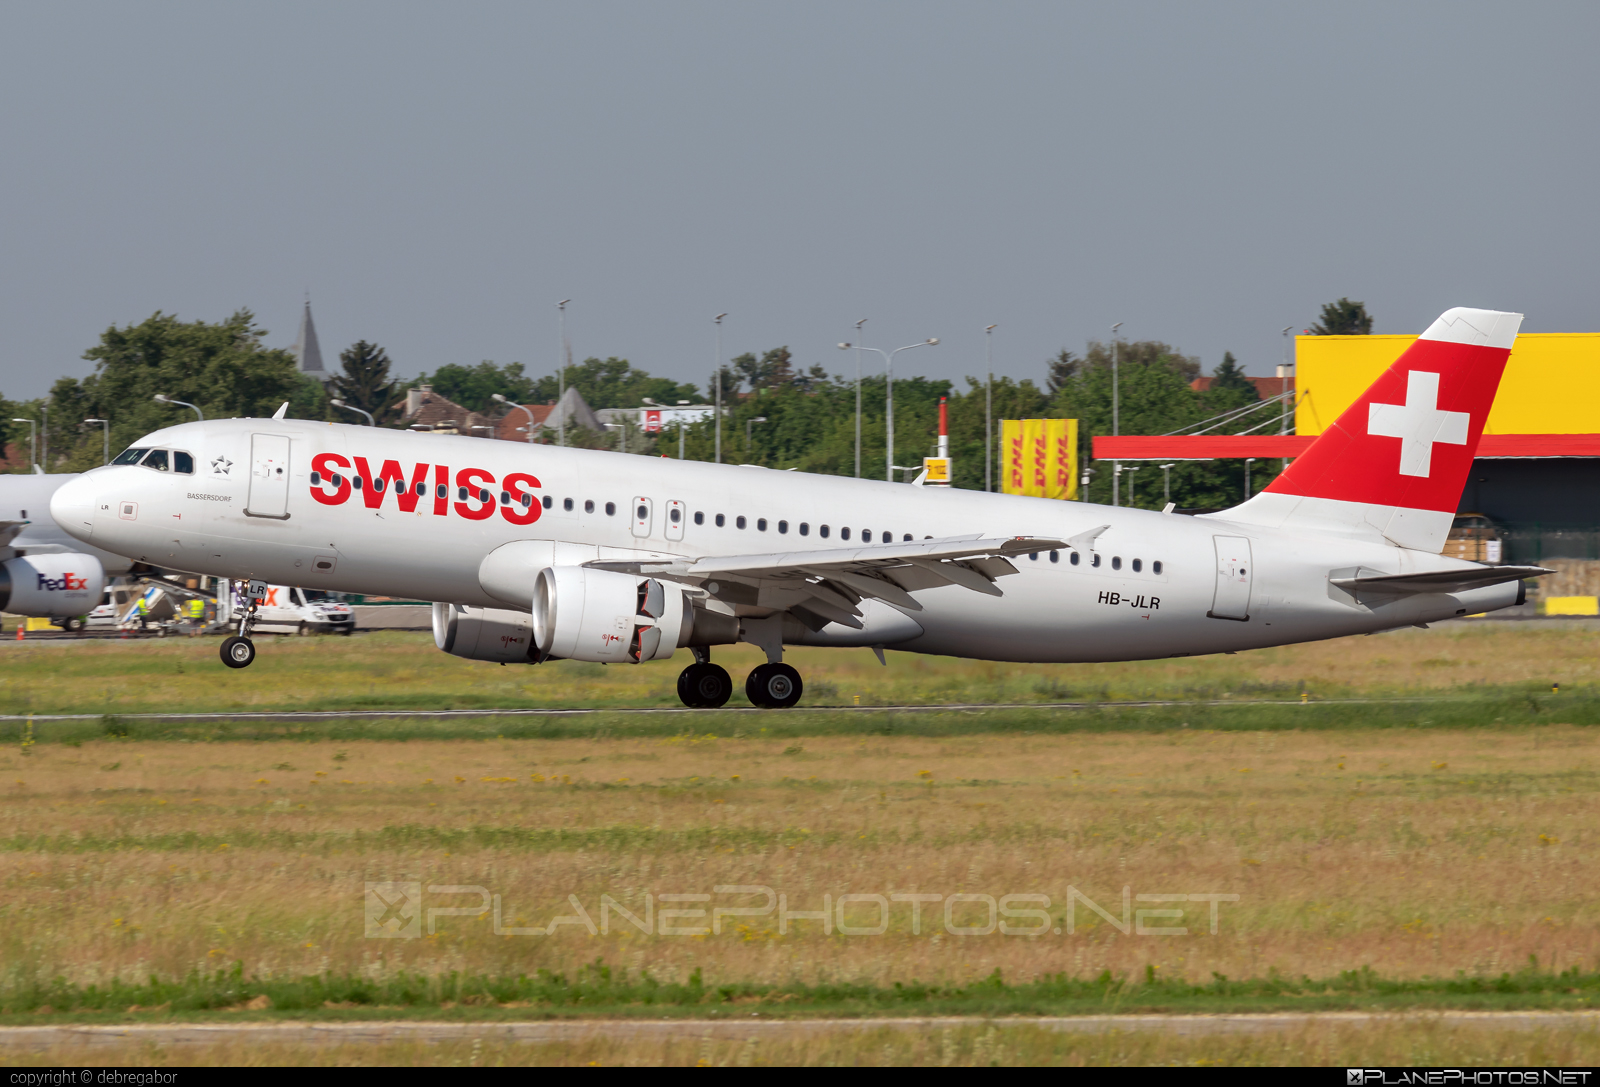 Airbus A320-214 - HB-JLR operated by Swiss International Air Lines #a320 #a320family #airbus #airbus320 #swiss #swissairlines